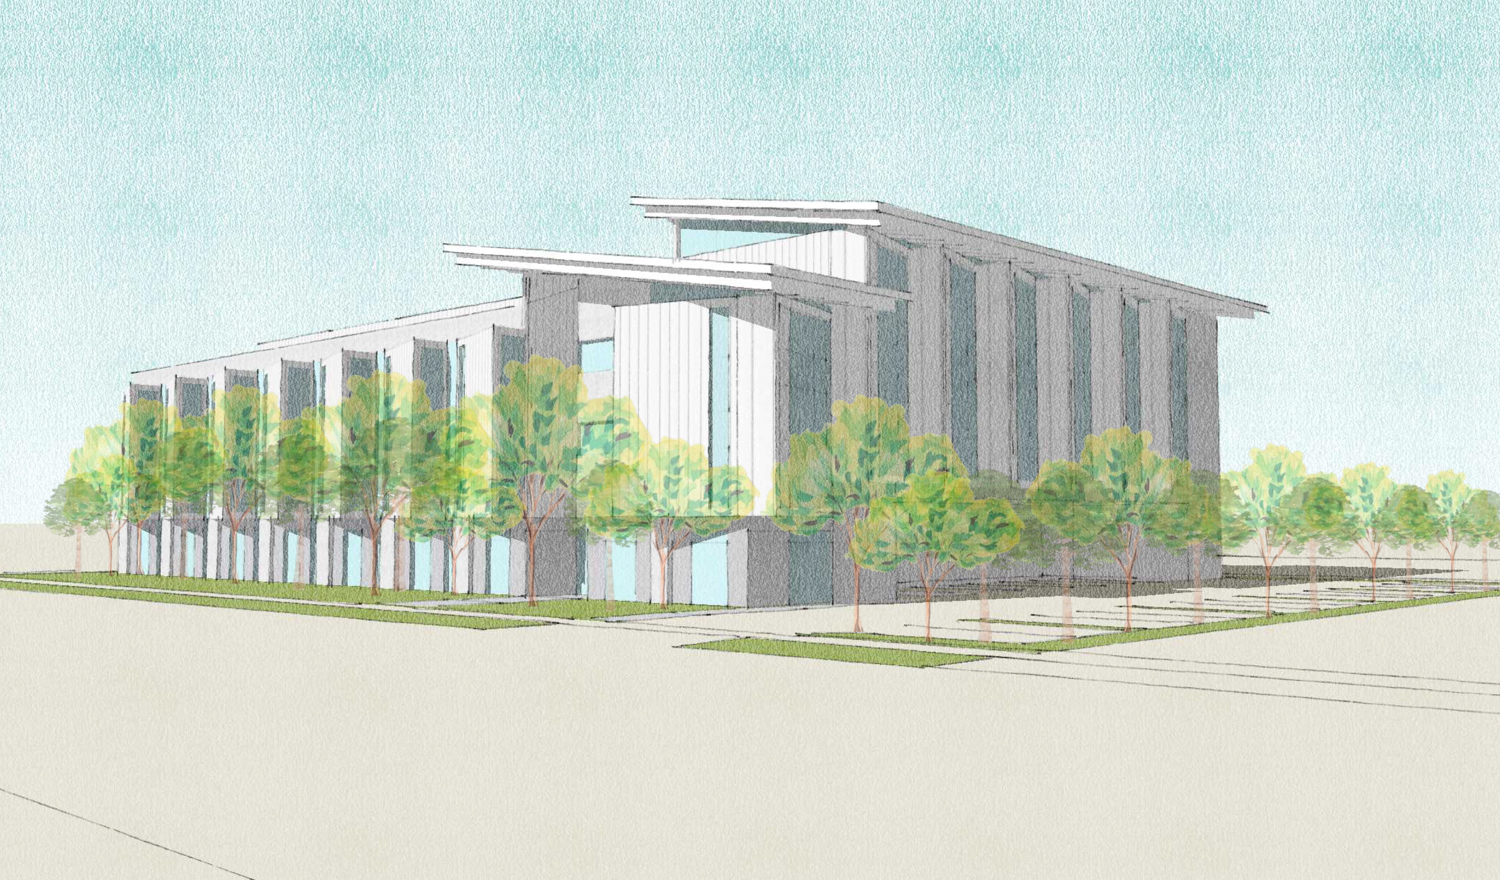 The Mitchell Project at 525 East Charleston Road, rendering by OJK Architecture